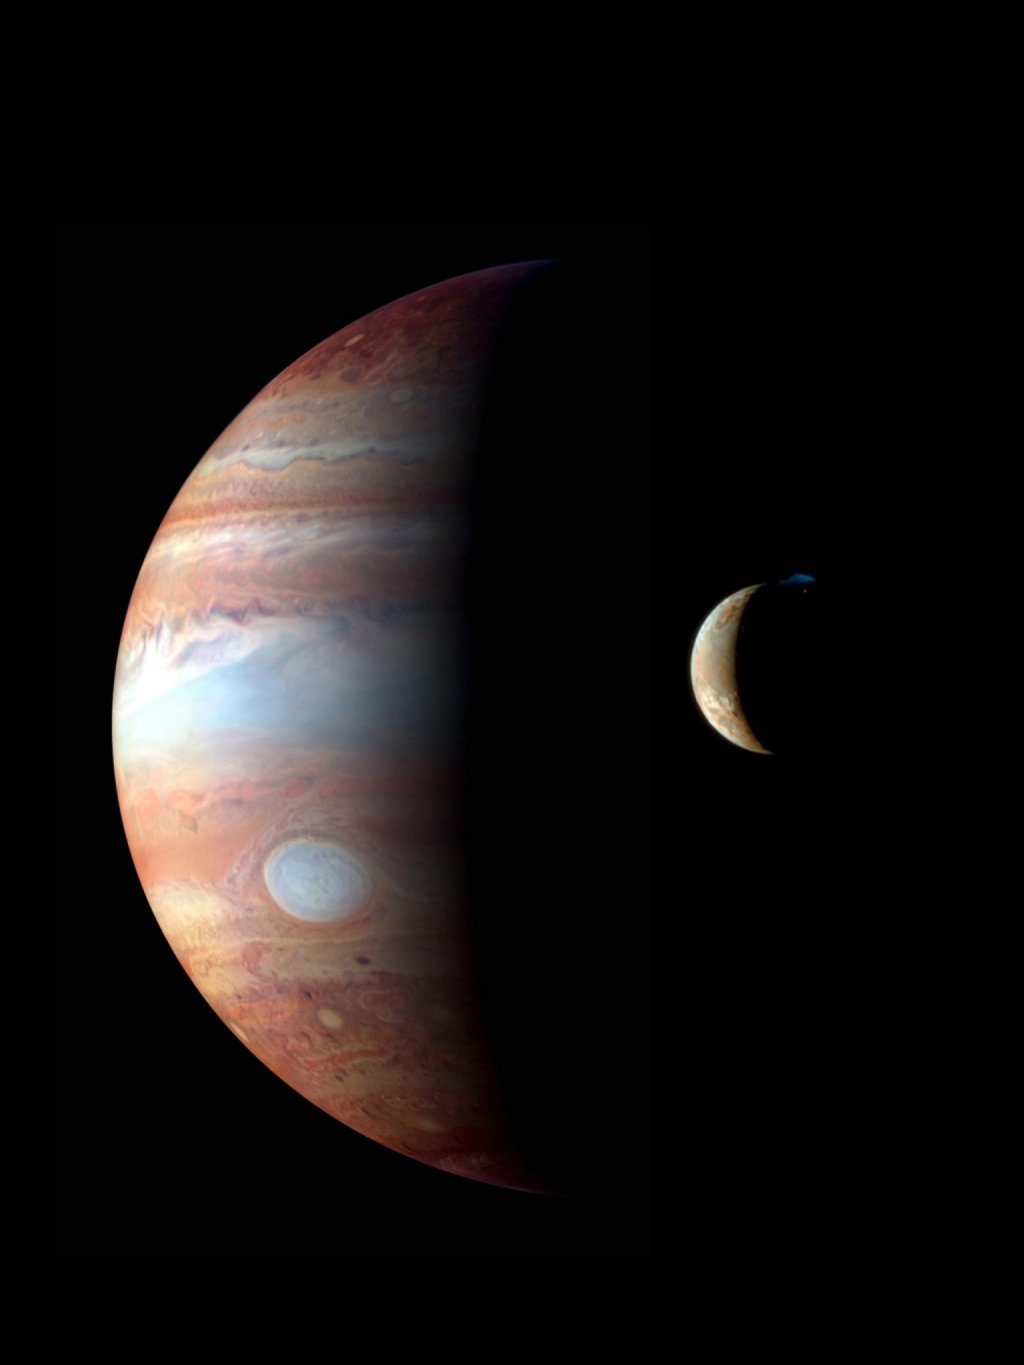 jupiter io montage new horizons 5a553fc0fa9265edfc23bf3825cad2a41